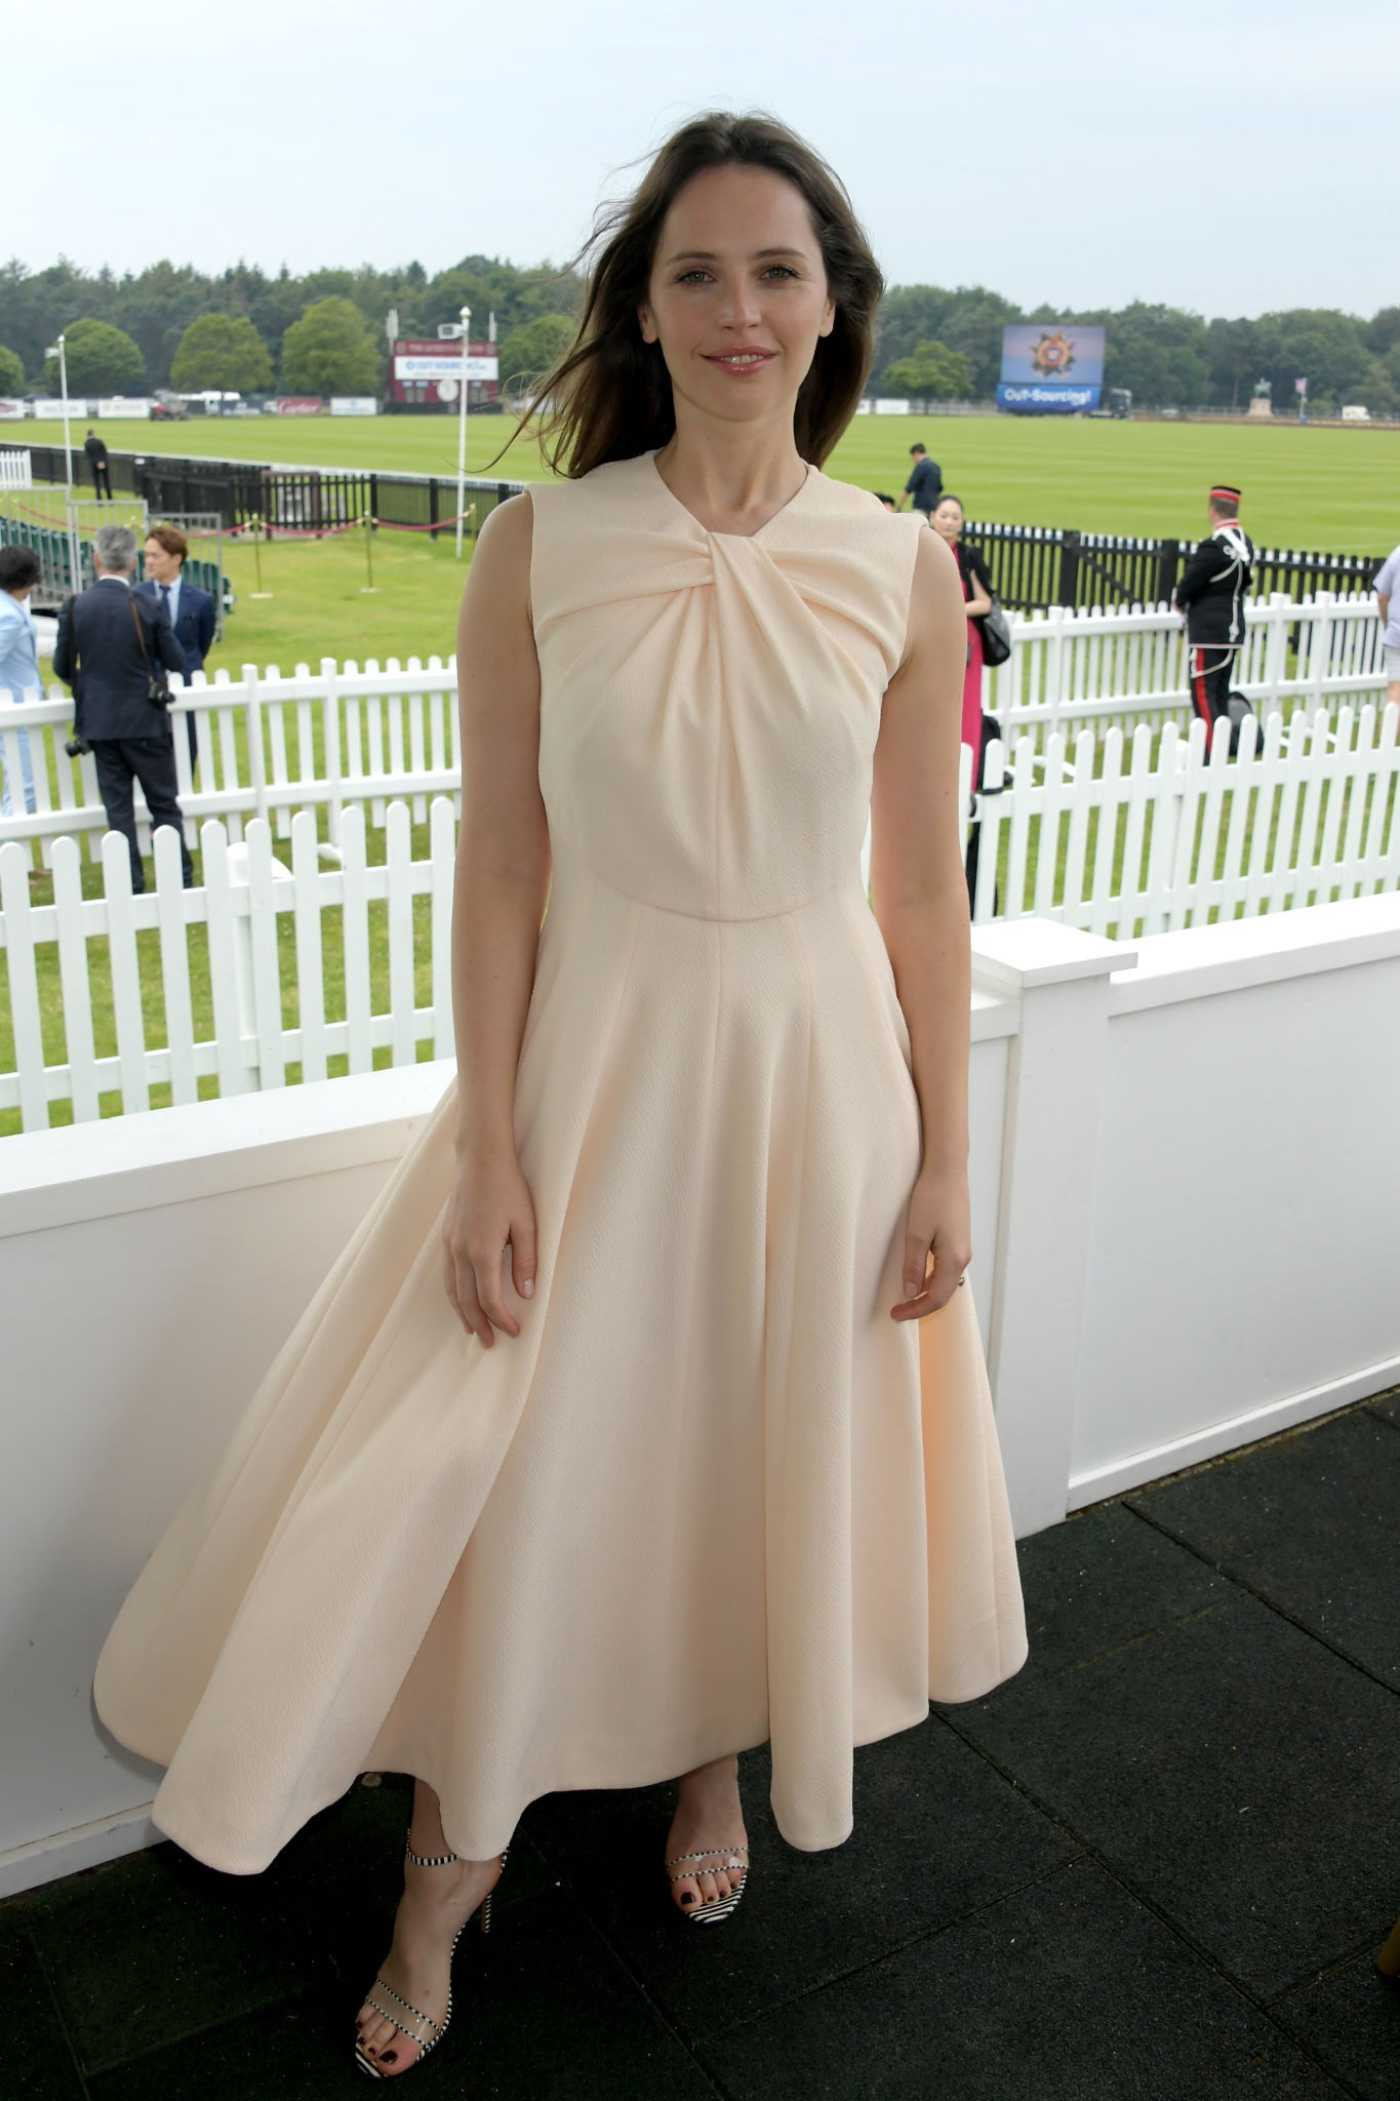 Felicity Jones Attends The Royal Windsor Cup Final at Guards Polo Club in Egham 06/23/2019